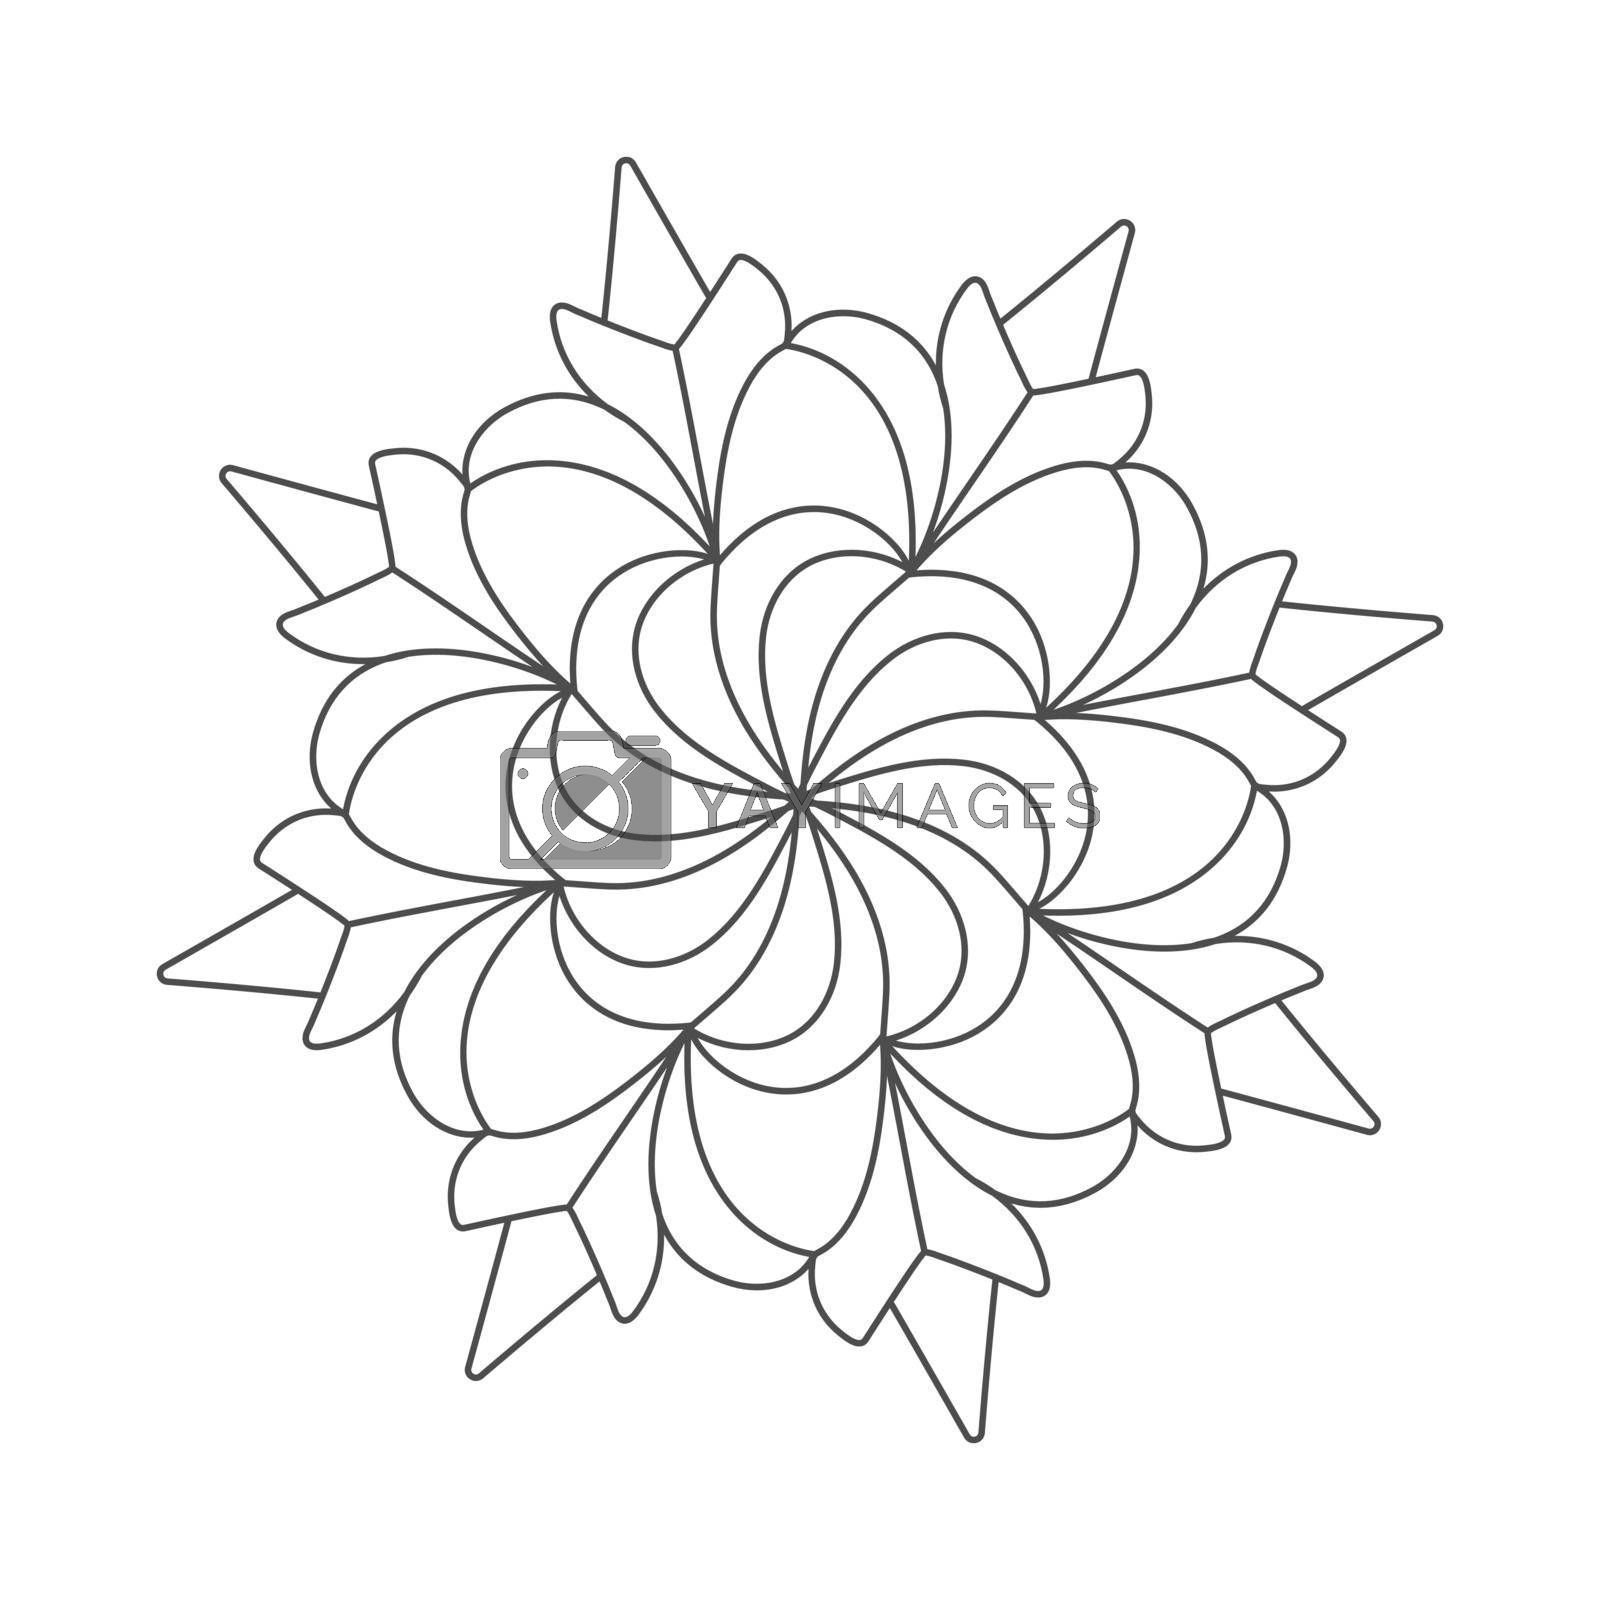 Line drawing of a flower pattern, for application, coloring book, scrapbooking, and creative design. Flat style.